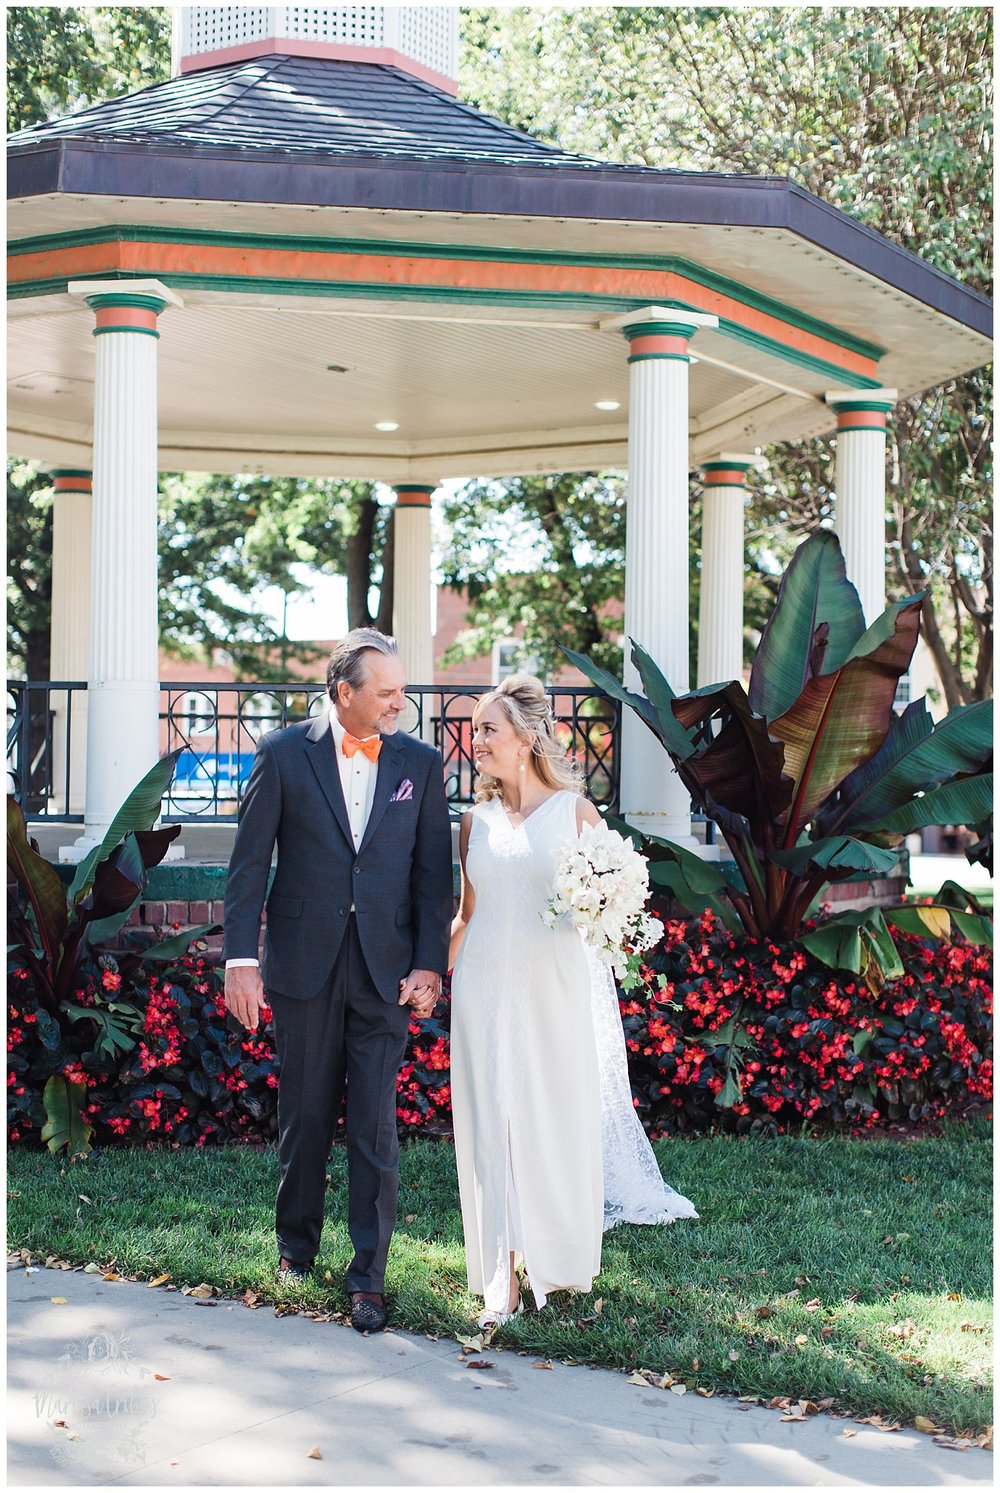 TOWN SQUARE PAOLA WEDDING | BRANDY & TERRY | MARISSA CRIBBS PHOTOGRAPHY_3082.jpg